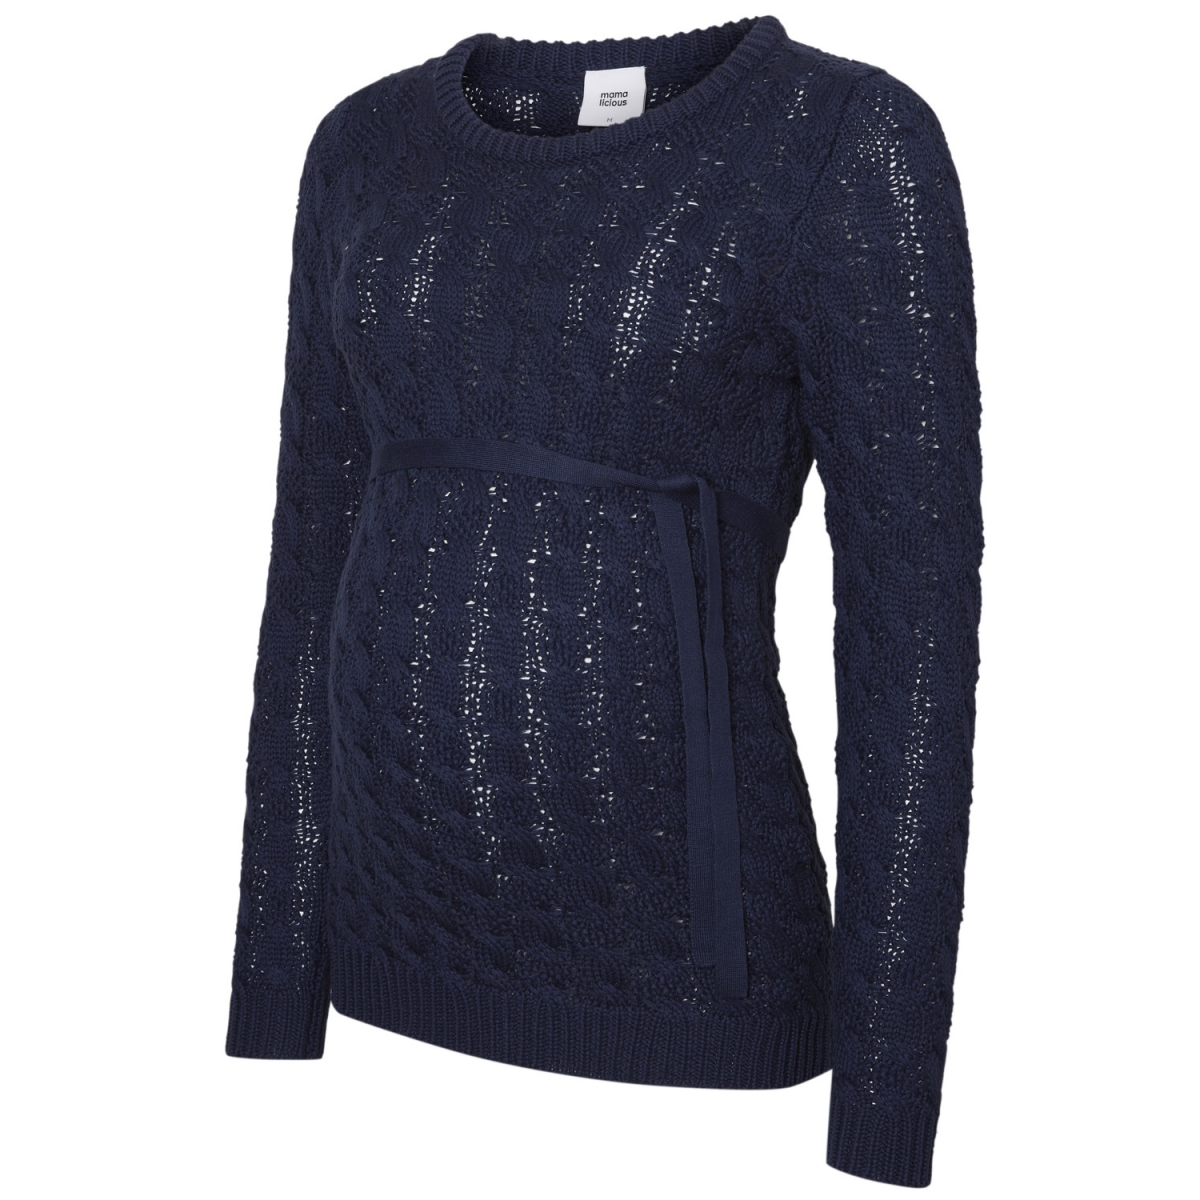 mlwalli l/s knit blouse 20007994 mama-licious positie trui medieval blue